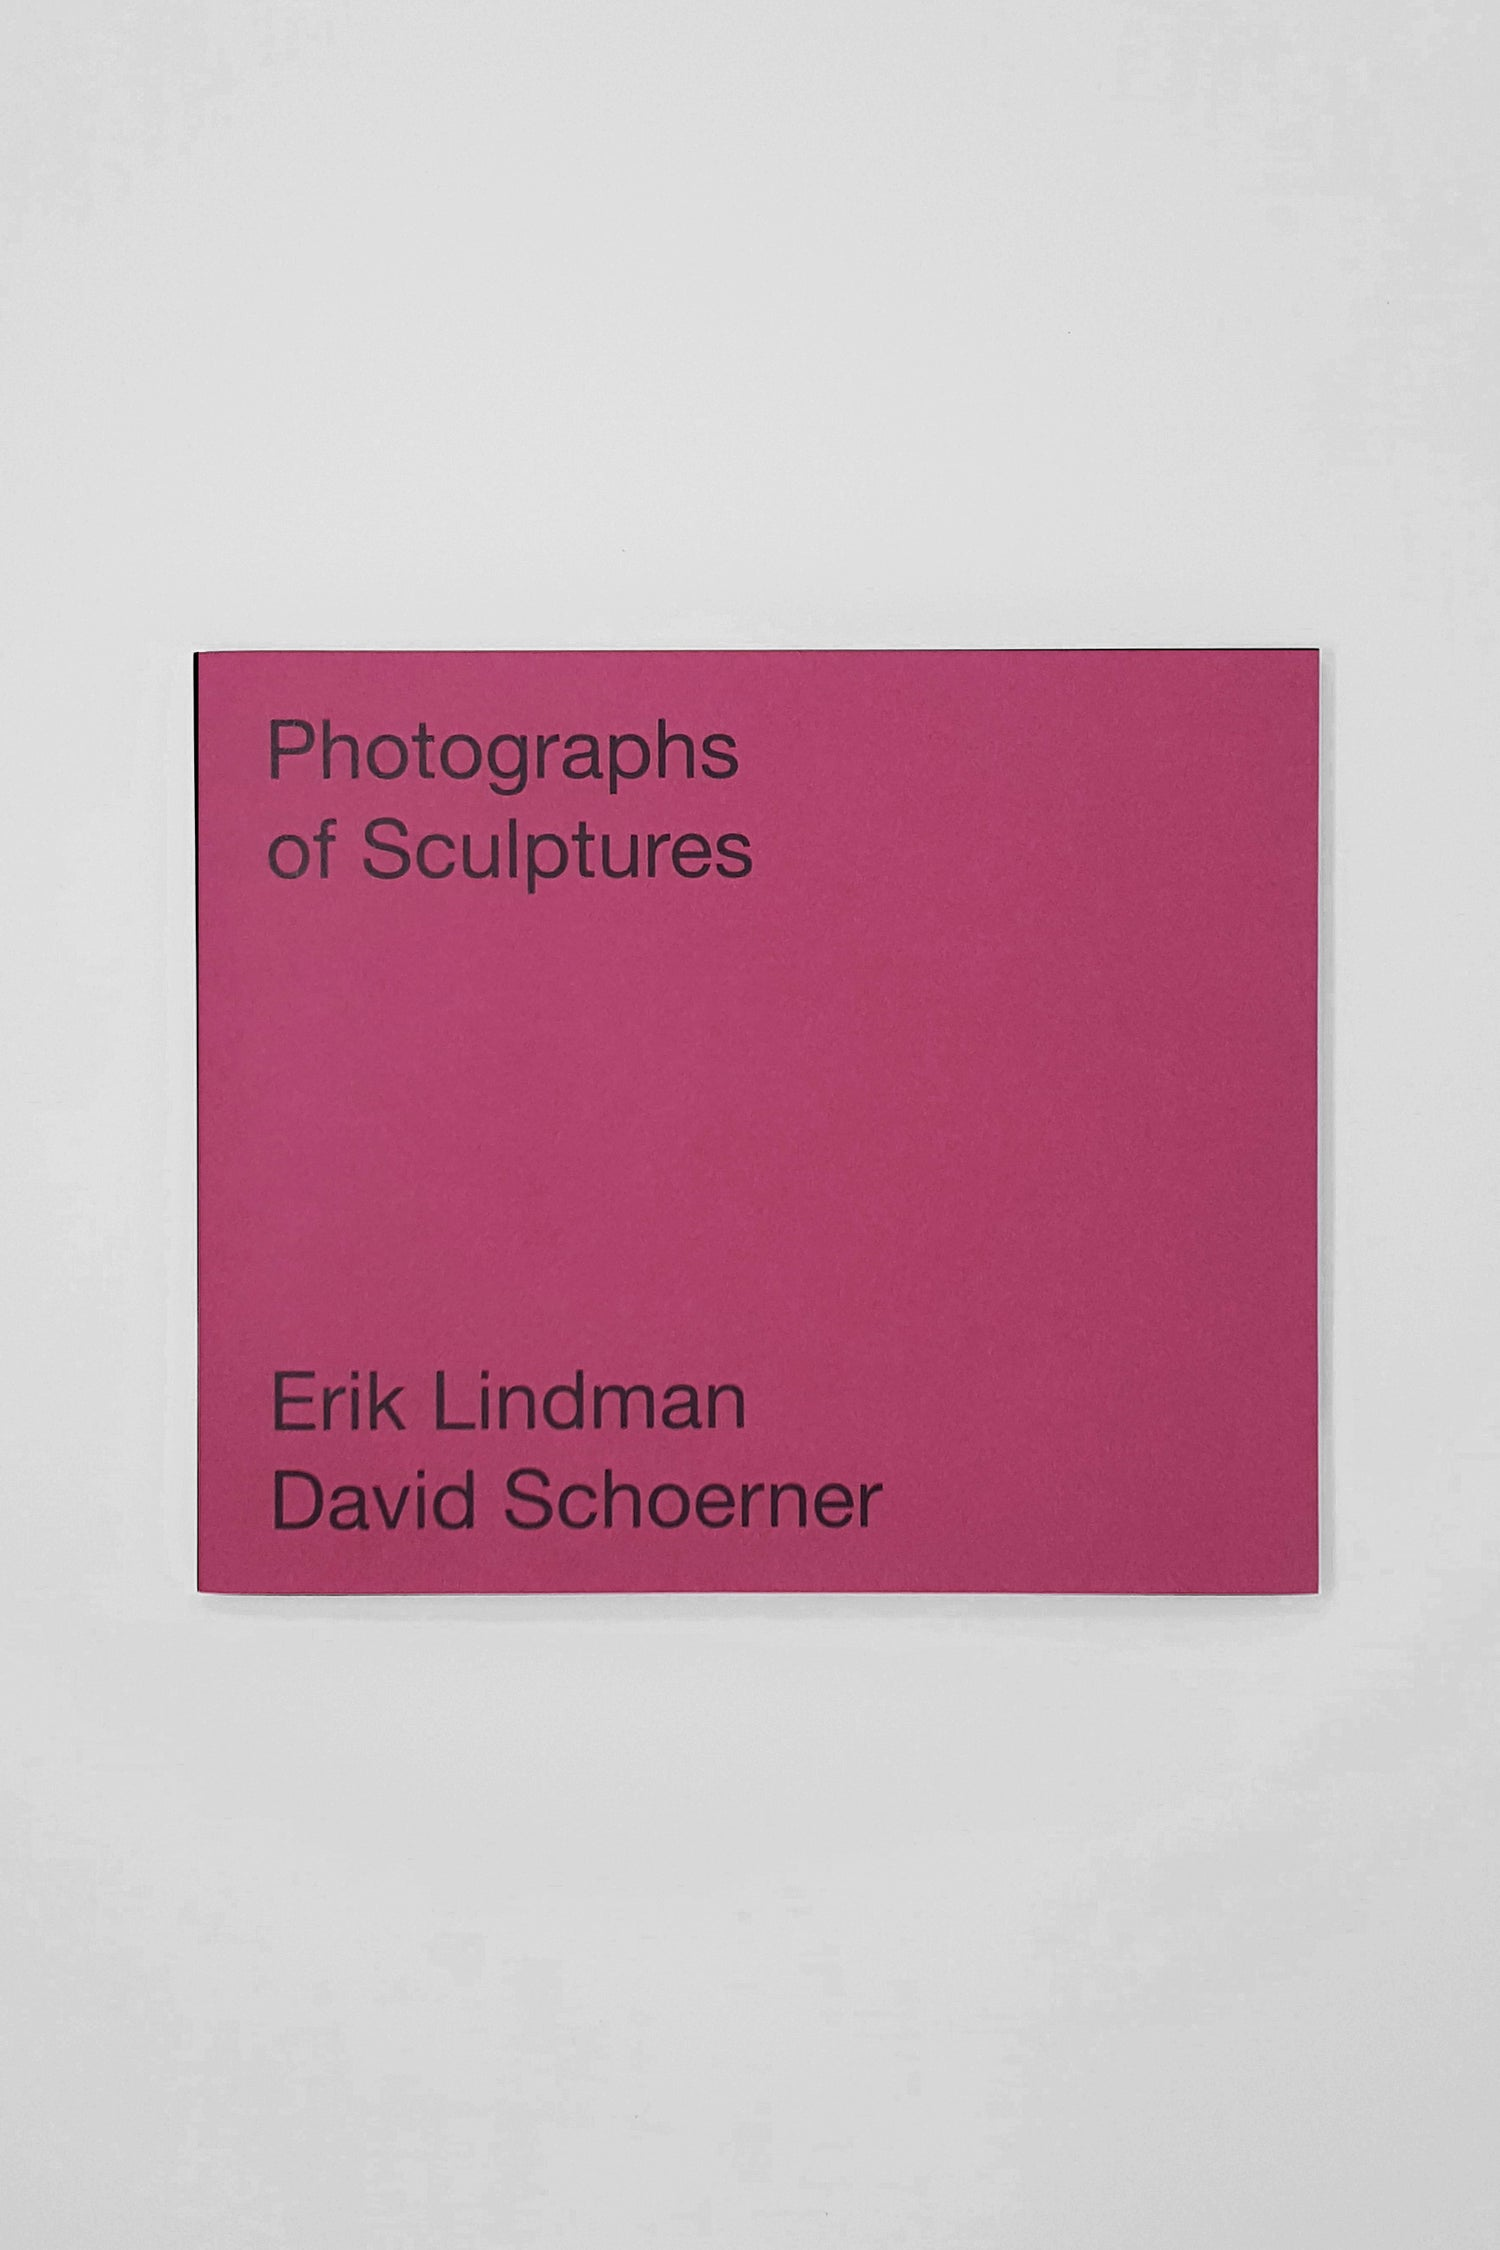 Image of Erik Lindman & David Schoerner - Photographs of Sculptures